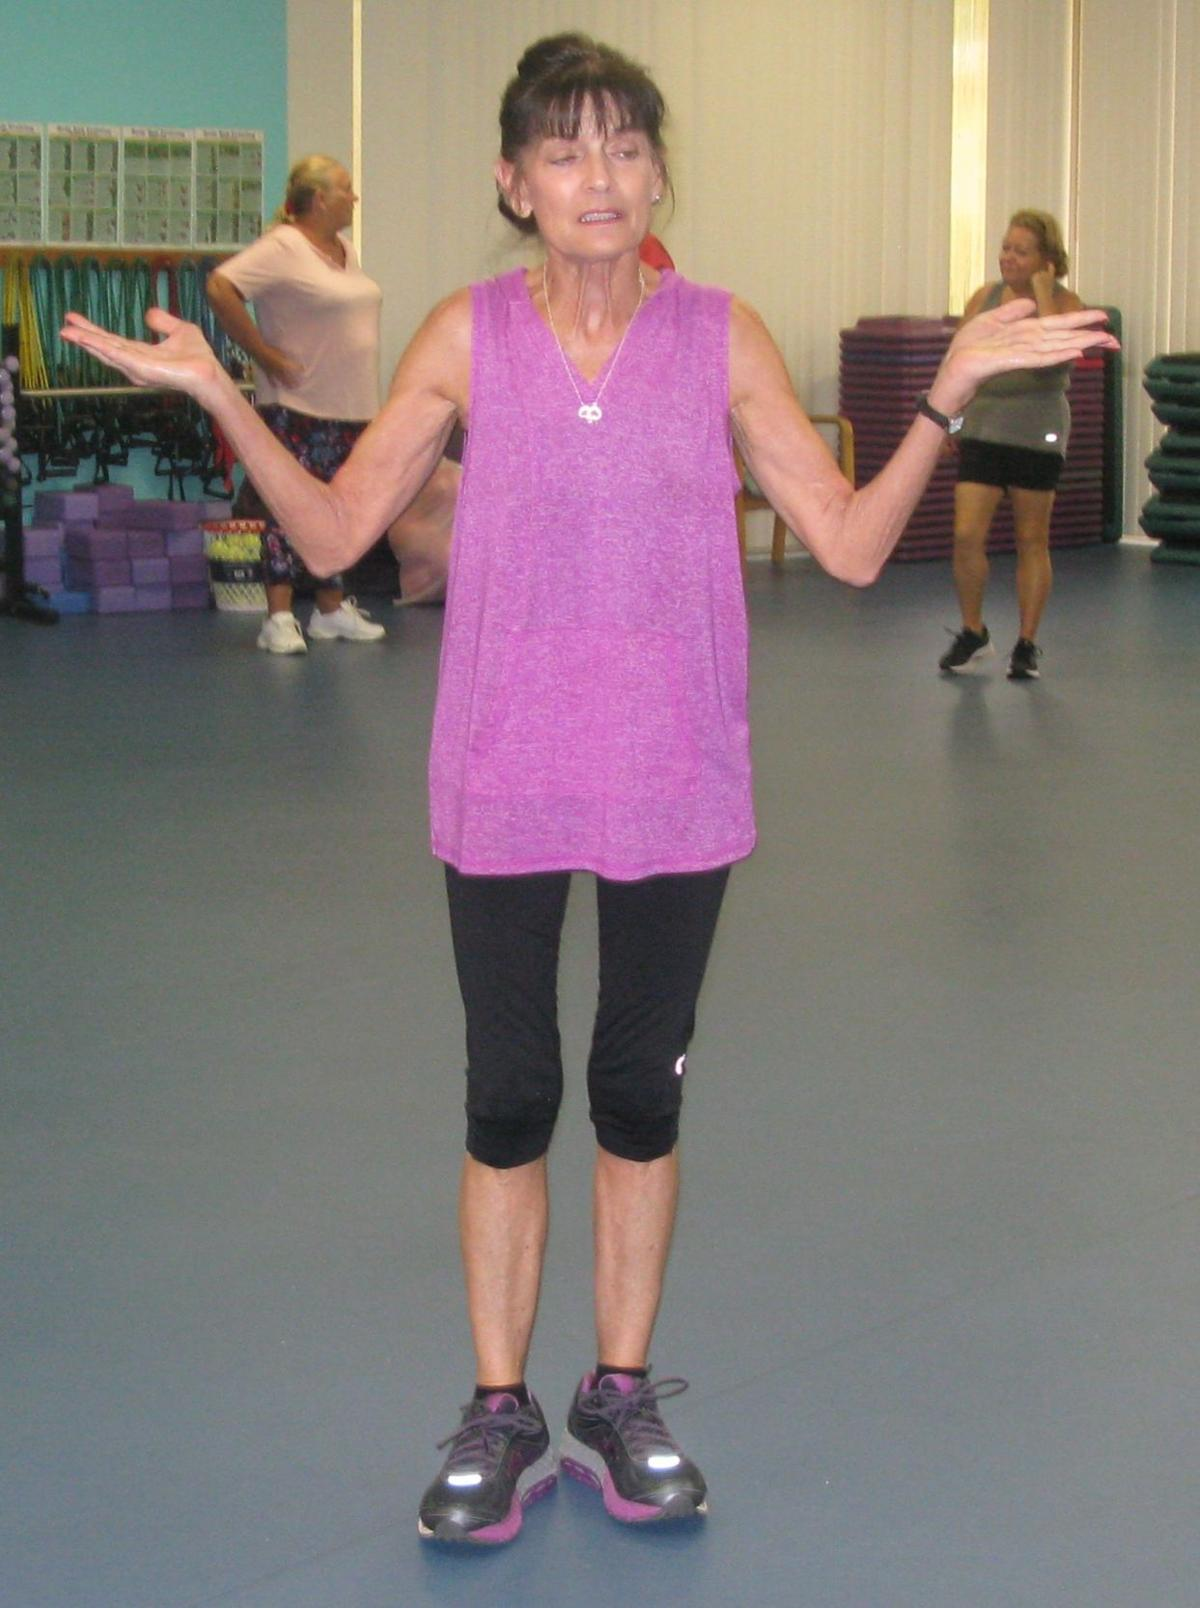 Local fitness instructor launches website